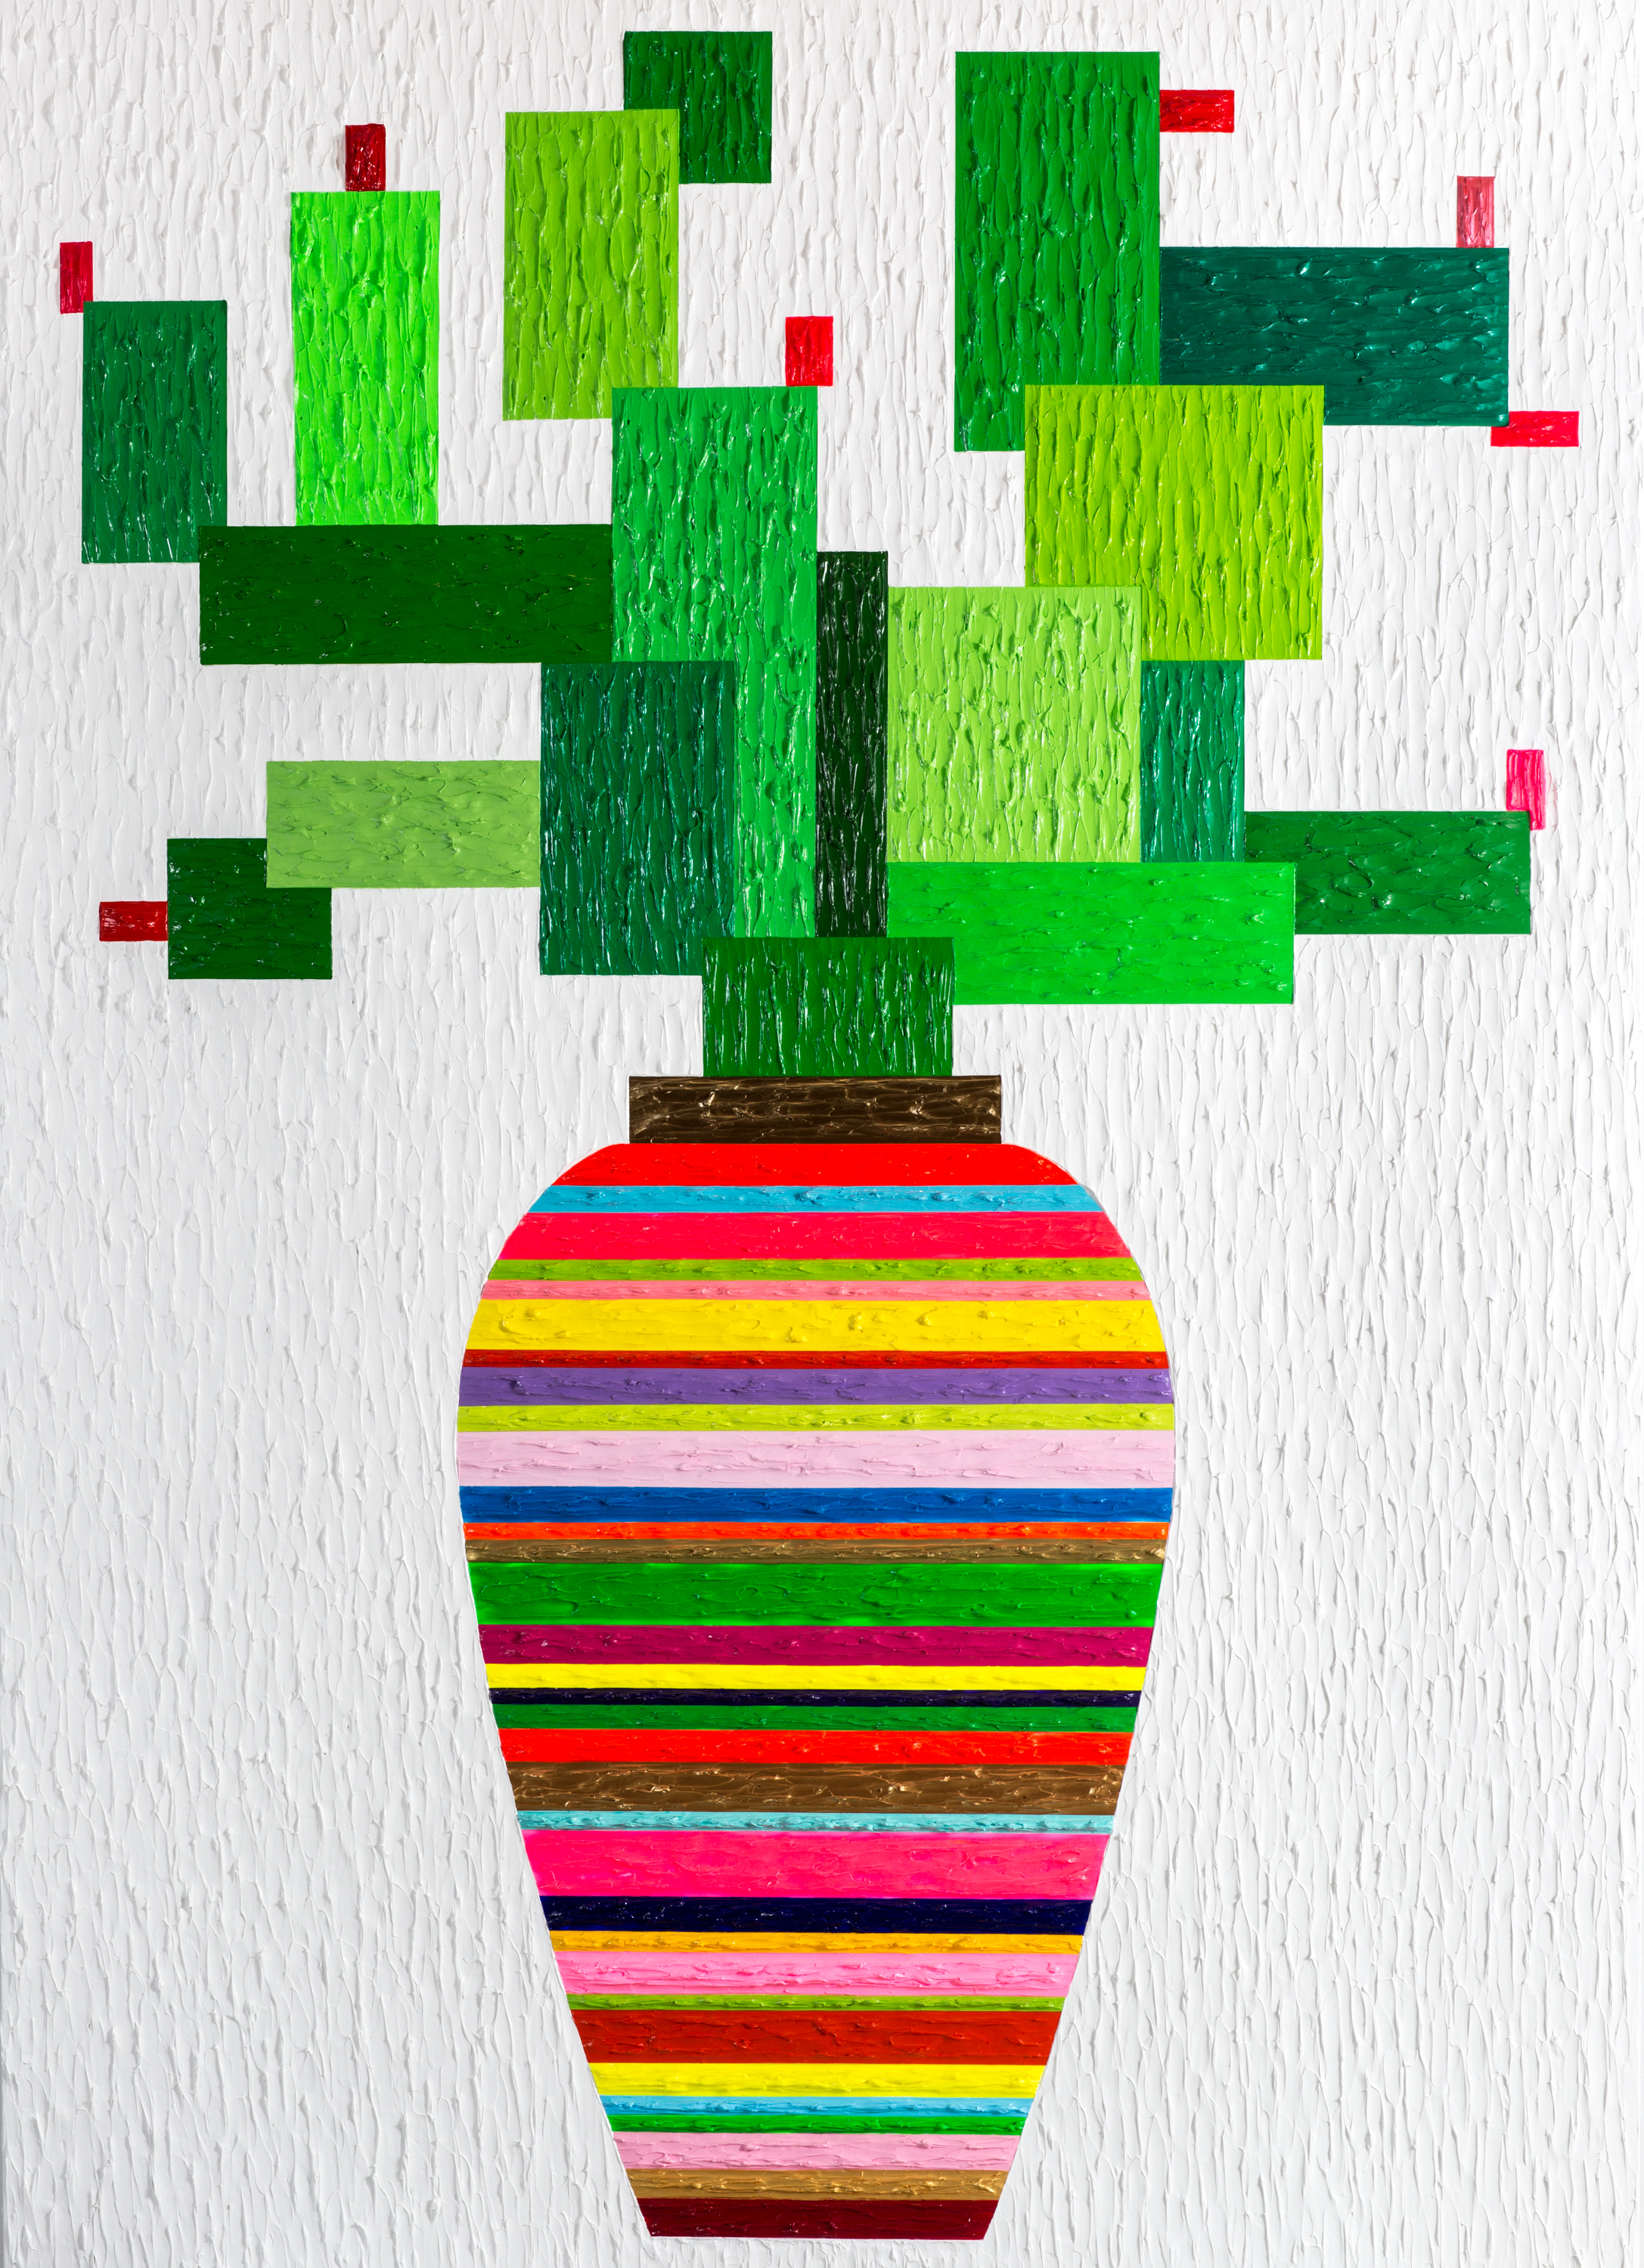 Zhenya Xia,  Cactus , 2015, Acrylic on canvas, 84h x 60w in, Courtesy HG Contemporary